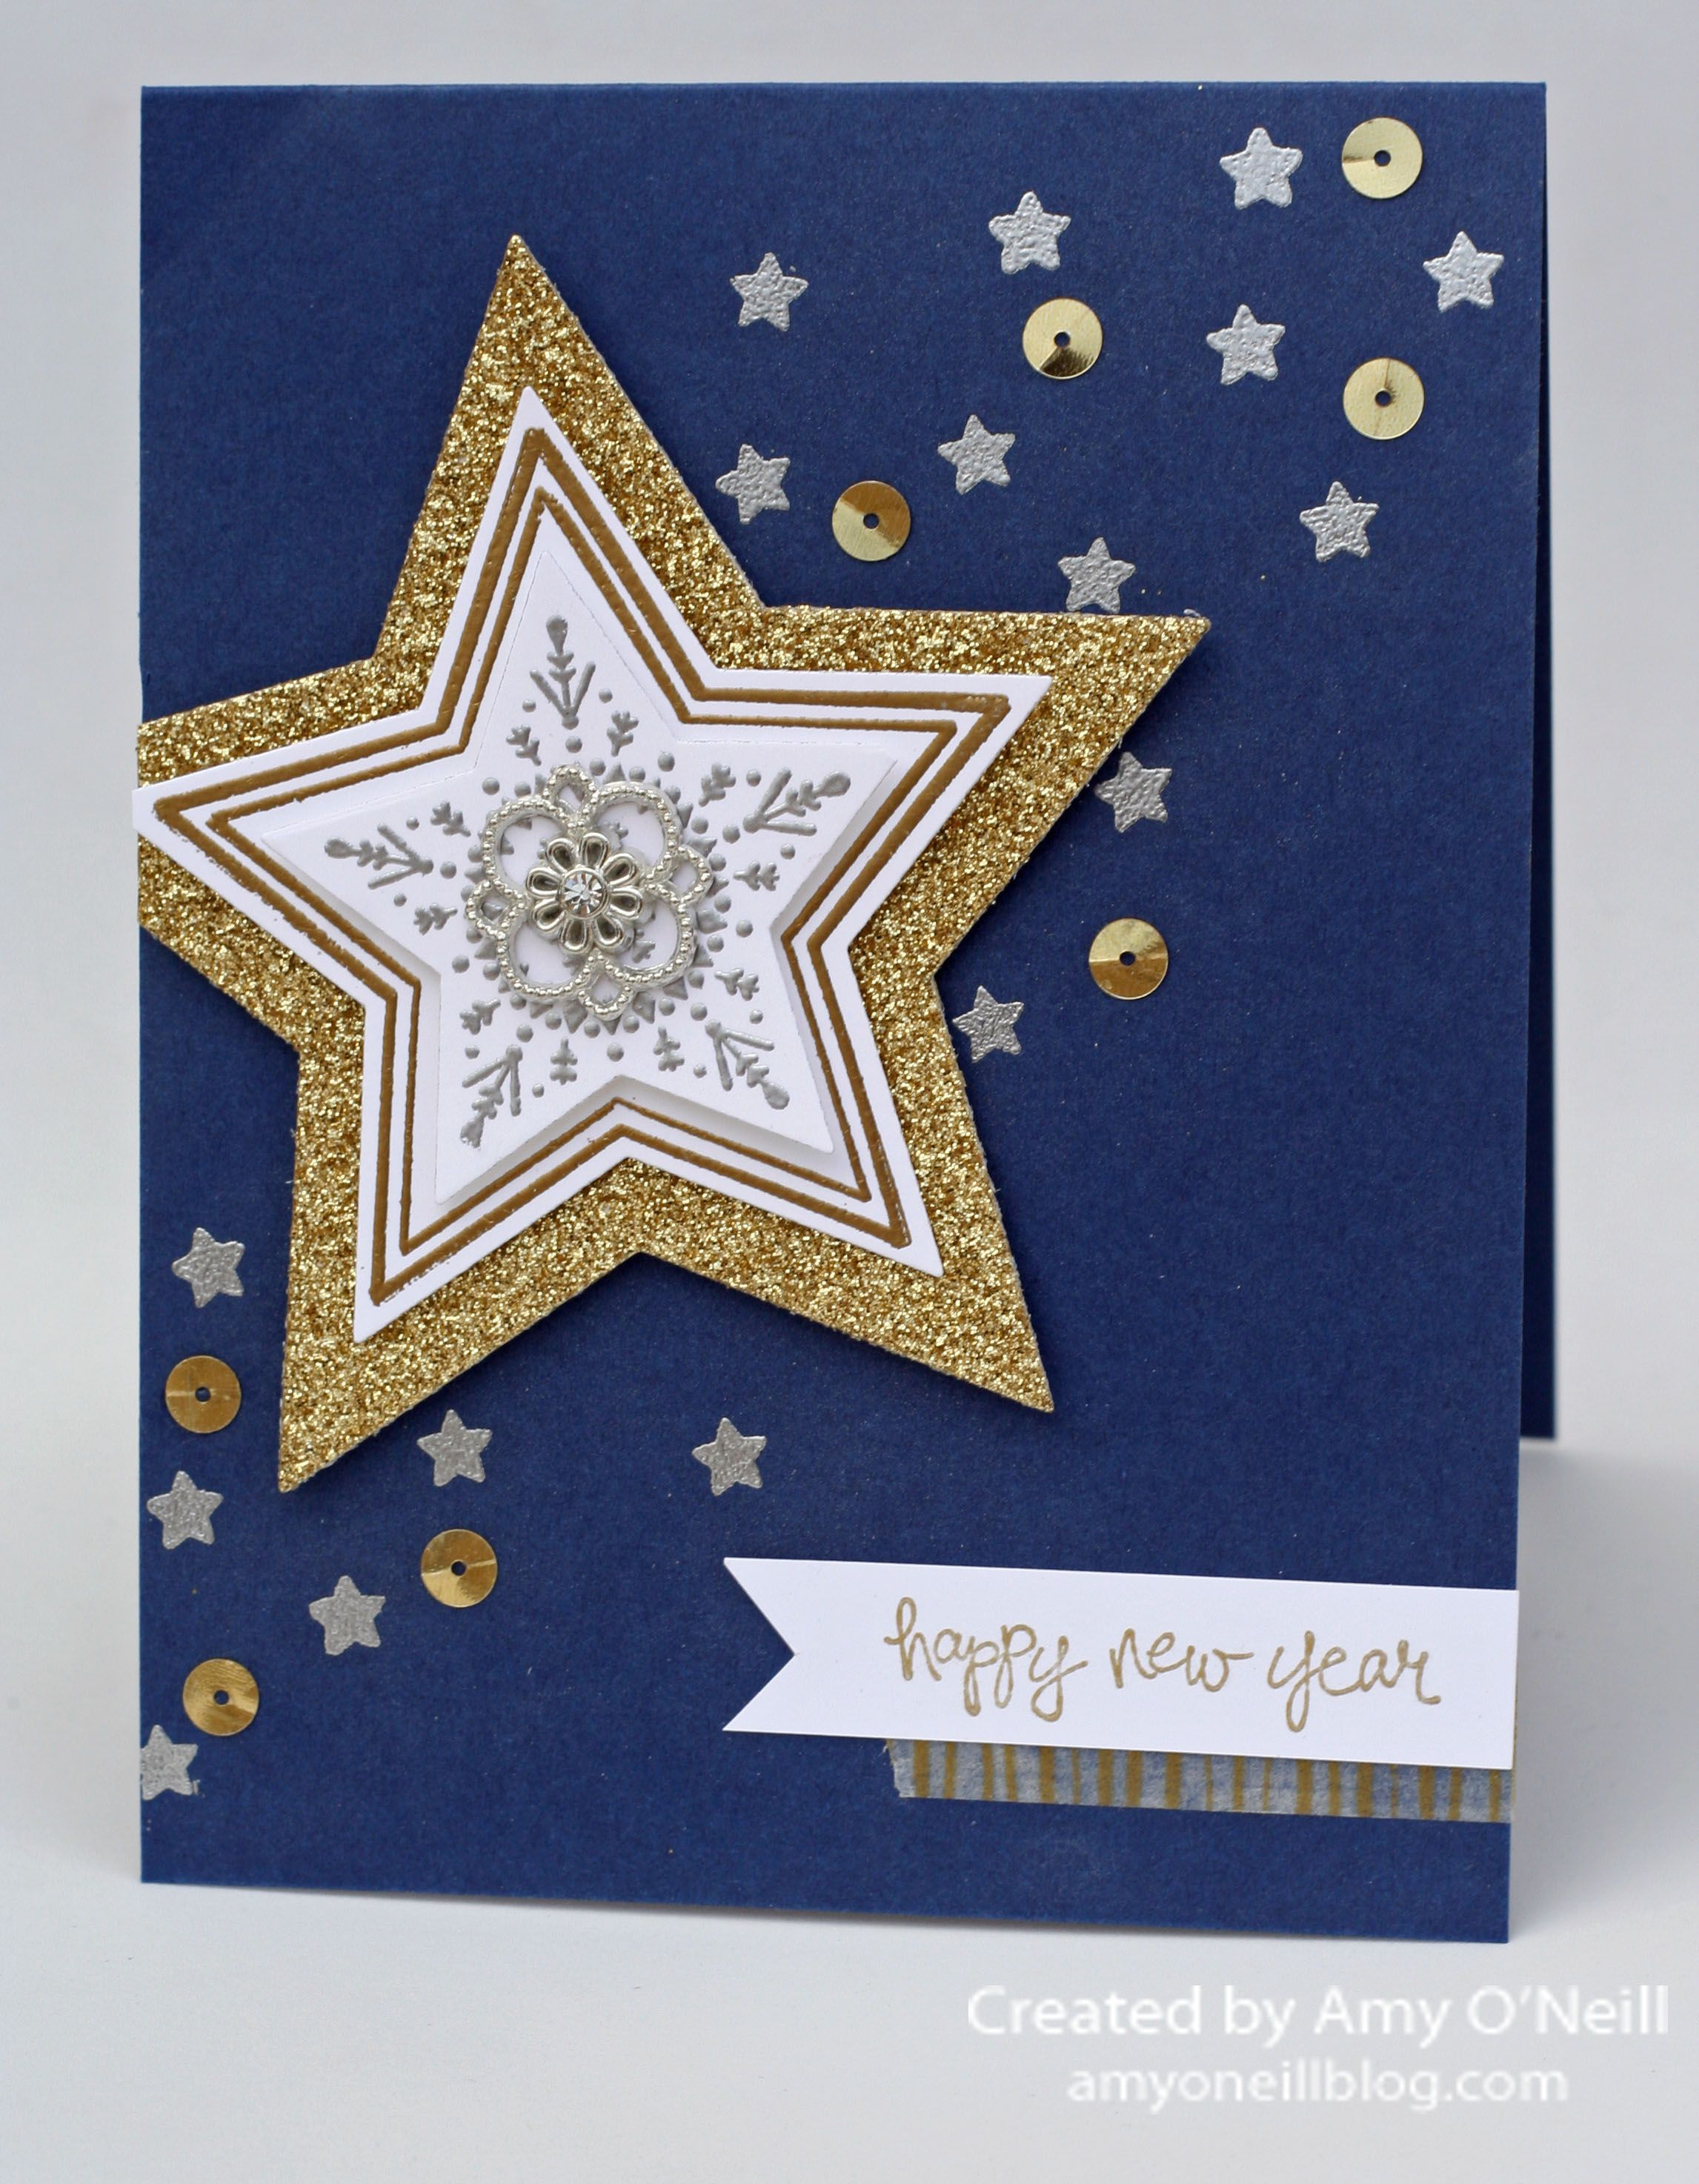 Amy oneill amys paper crafts new year card 11115 su amy oneill amys paper crafts new year card su many merry stars stamps good greetings stamps pin christmas stars candles kristyandbryce Images